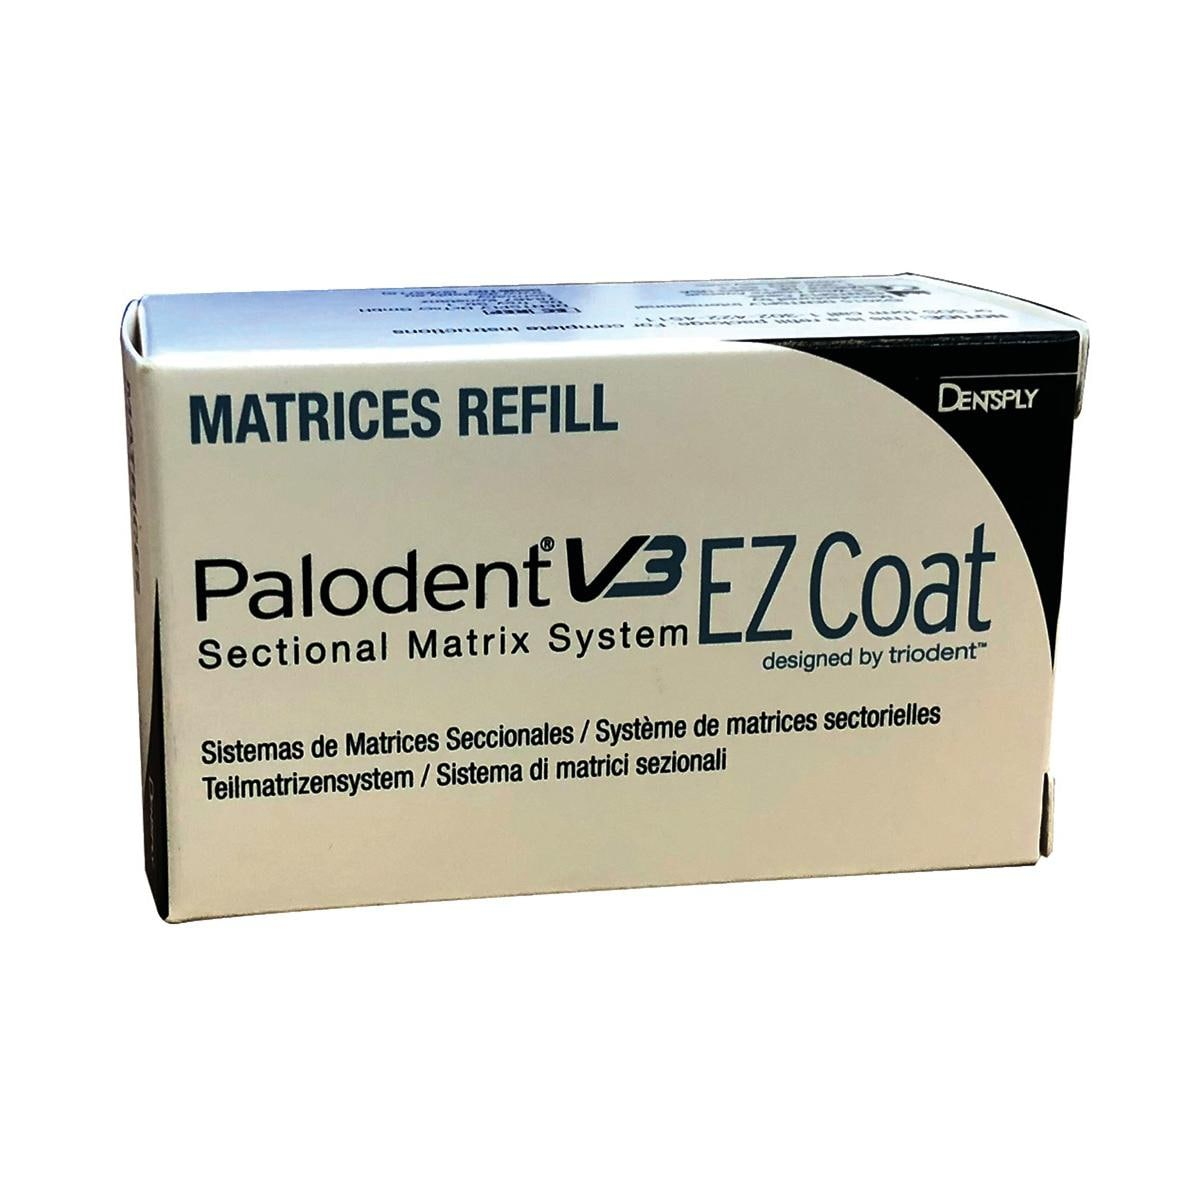 Palodent V3 EZ Coat Matrices 3.5mm Refill 50pk